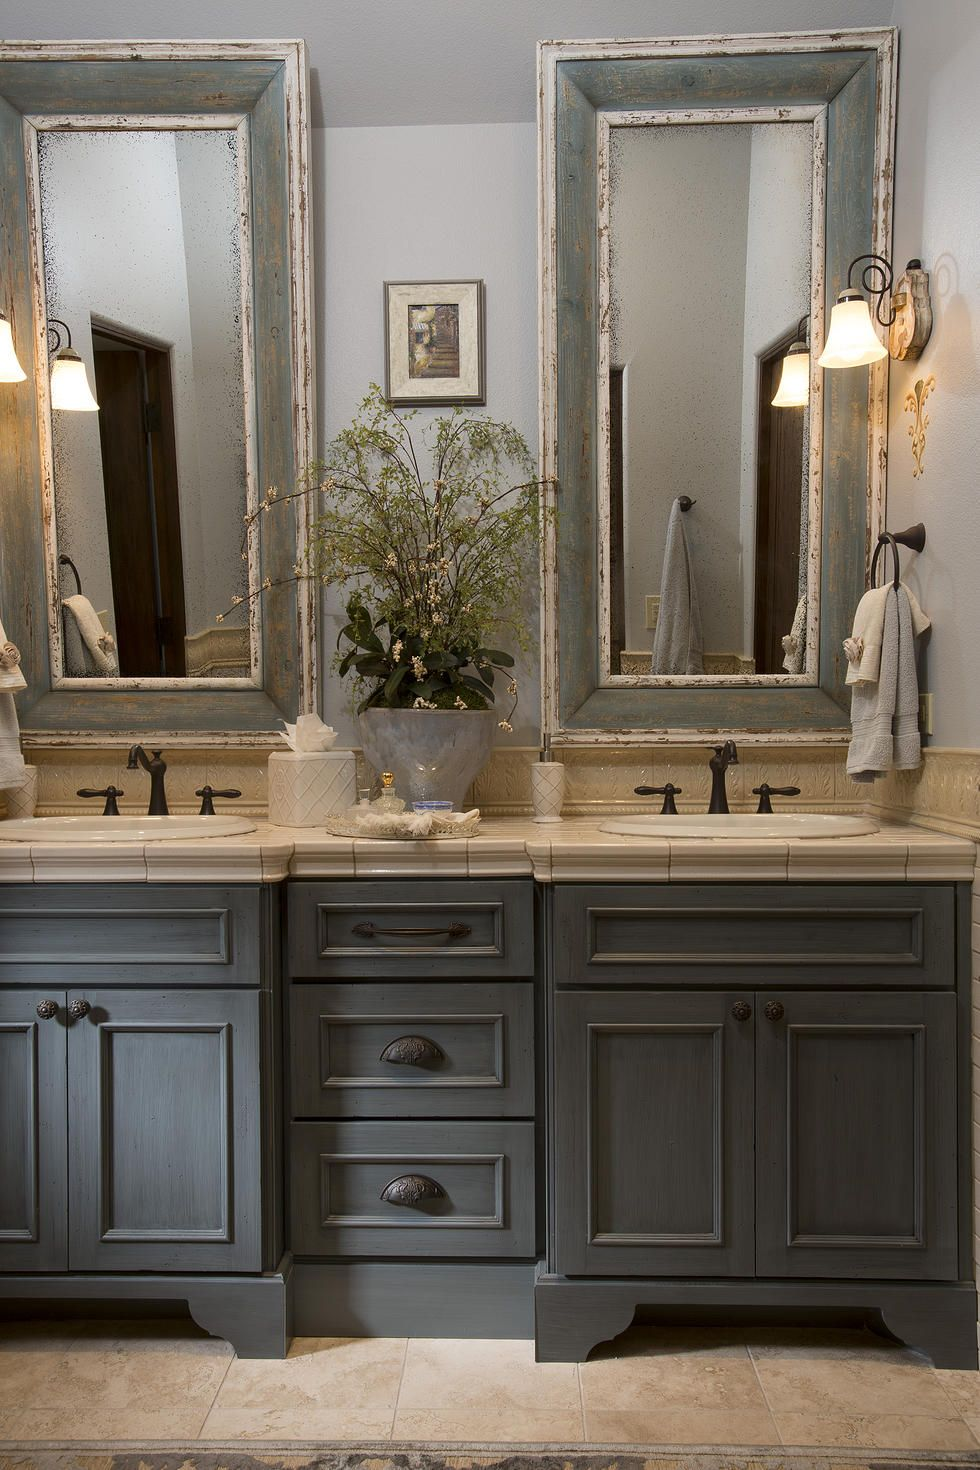 Country Bathrooms French Country Bathroom Gray Washed Cabinets Mirrors With